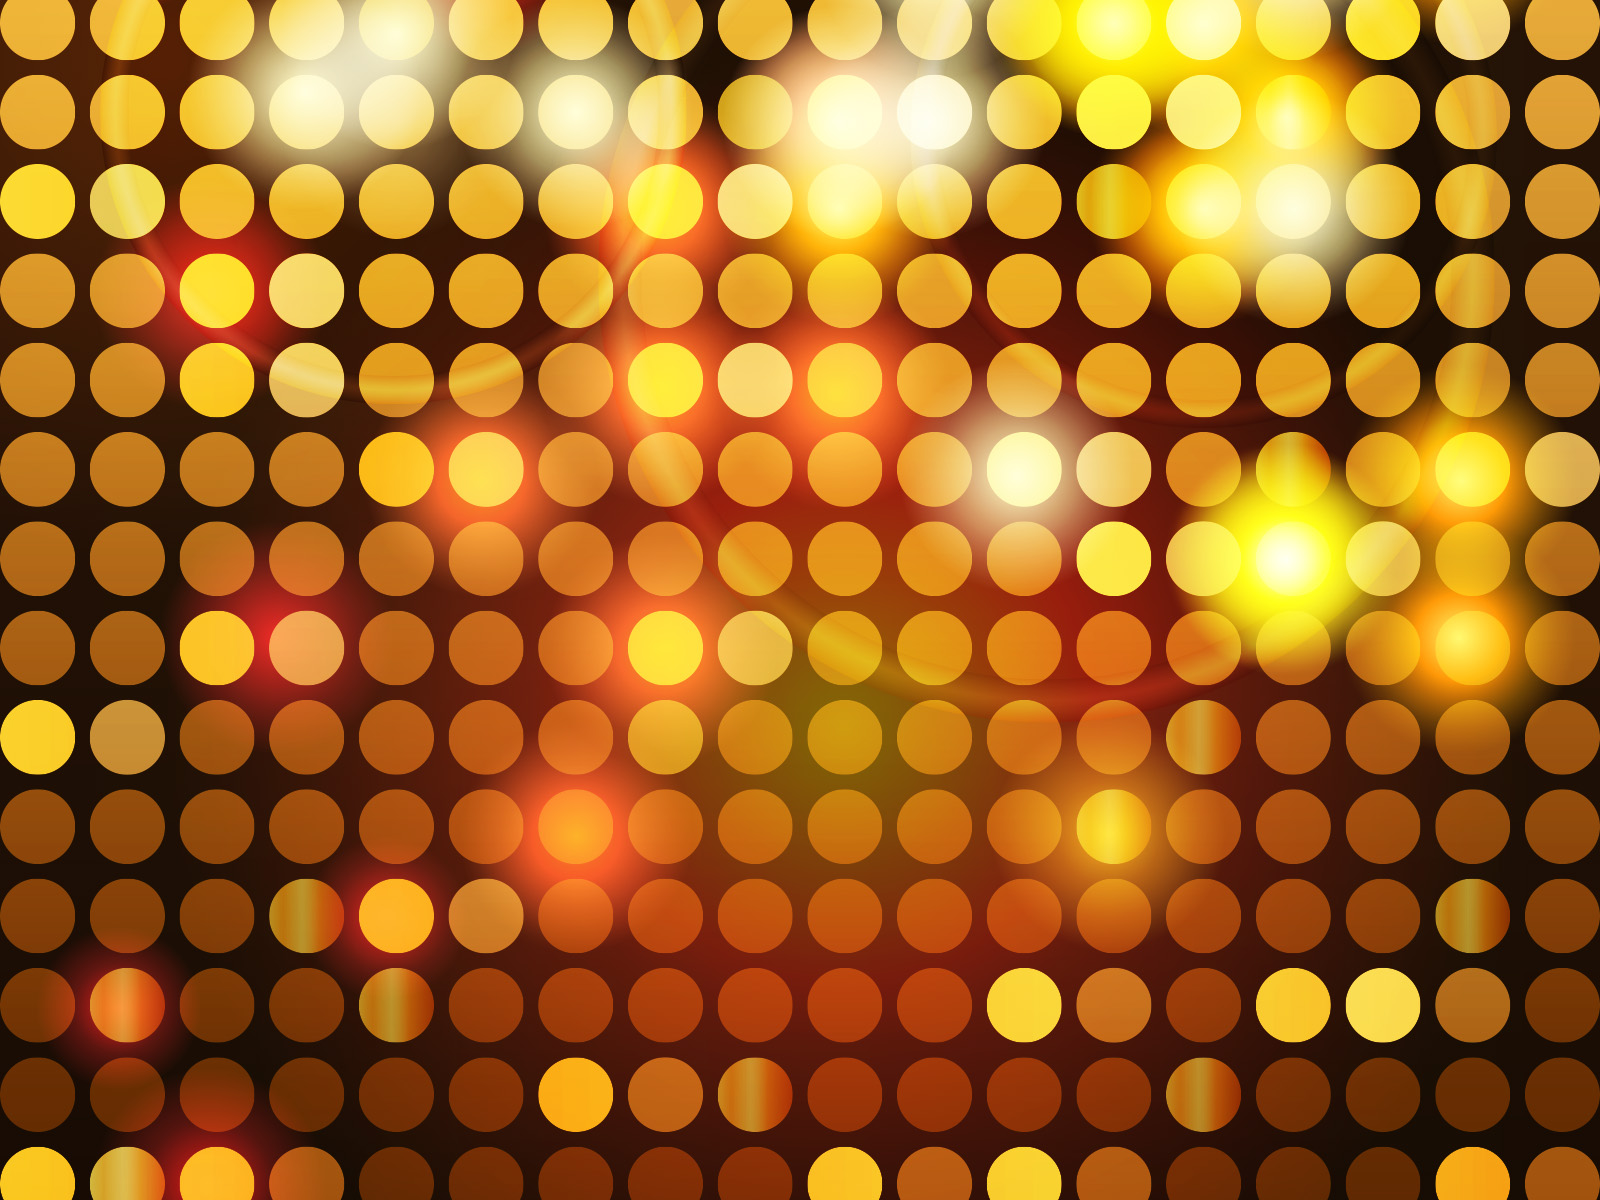 Shiny golden mosaic backgrounds